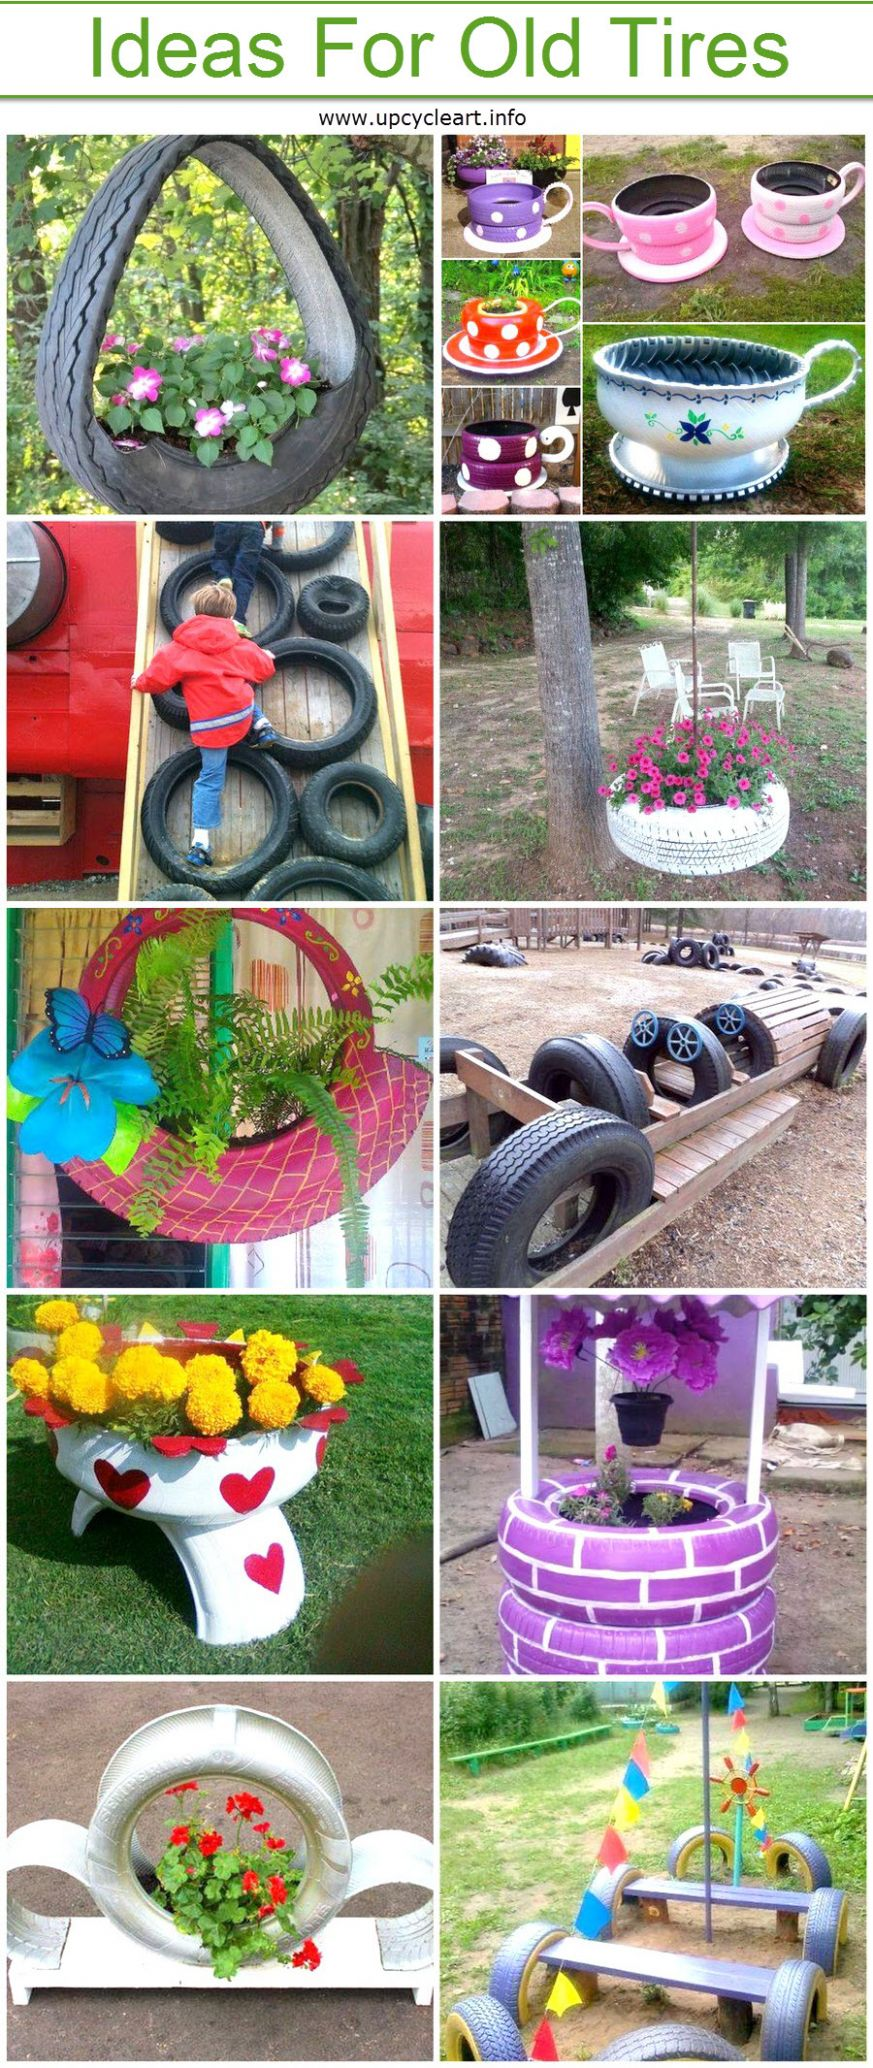 DIY Crafting Ideas For Old Tires | Upcycle Art - garden ideas with tires